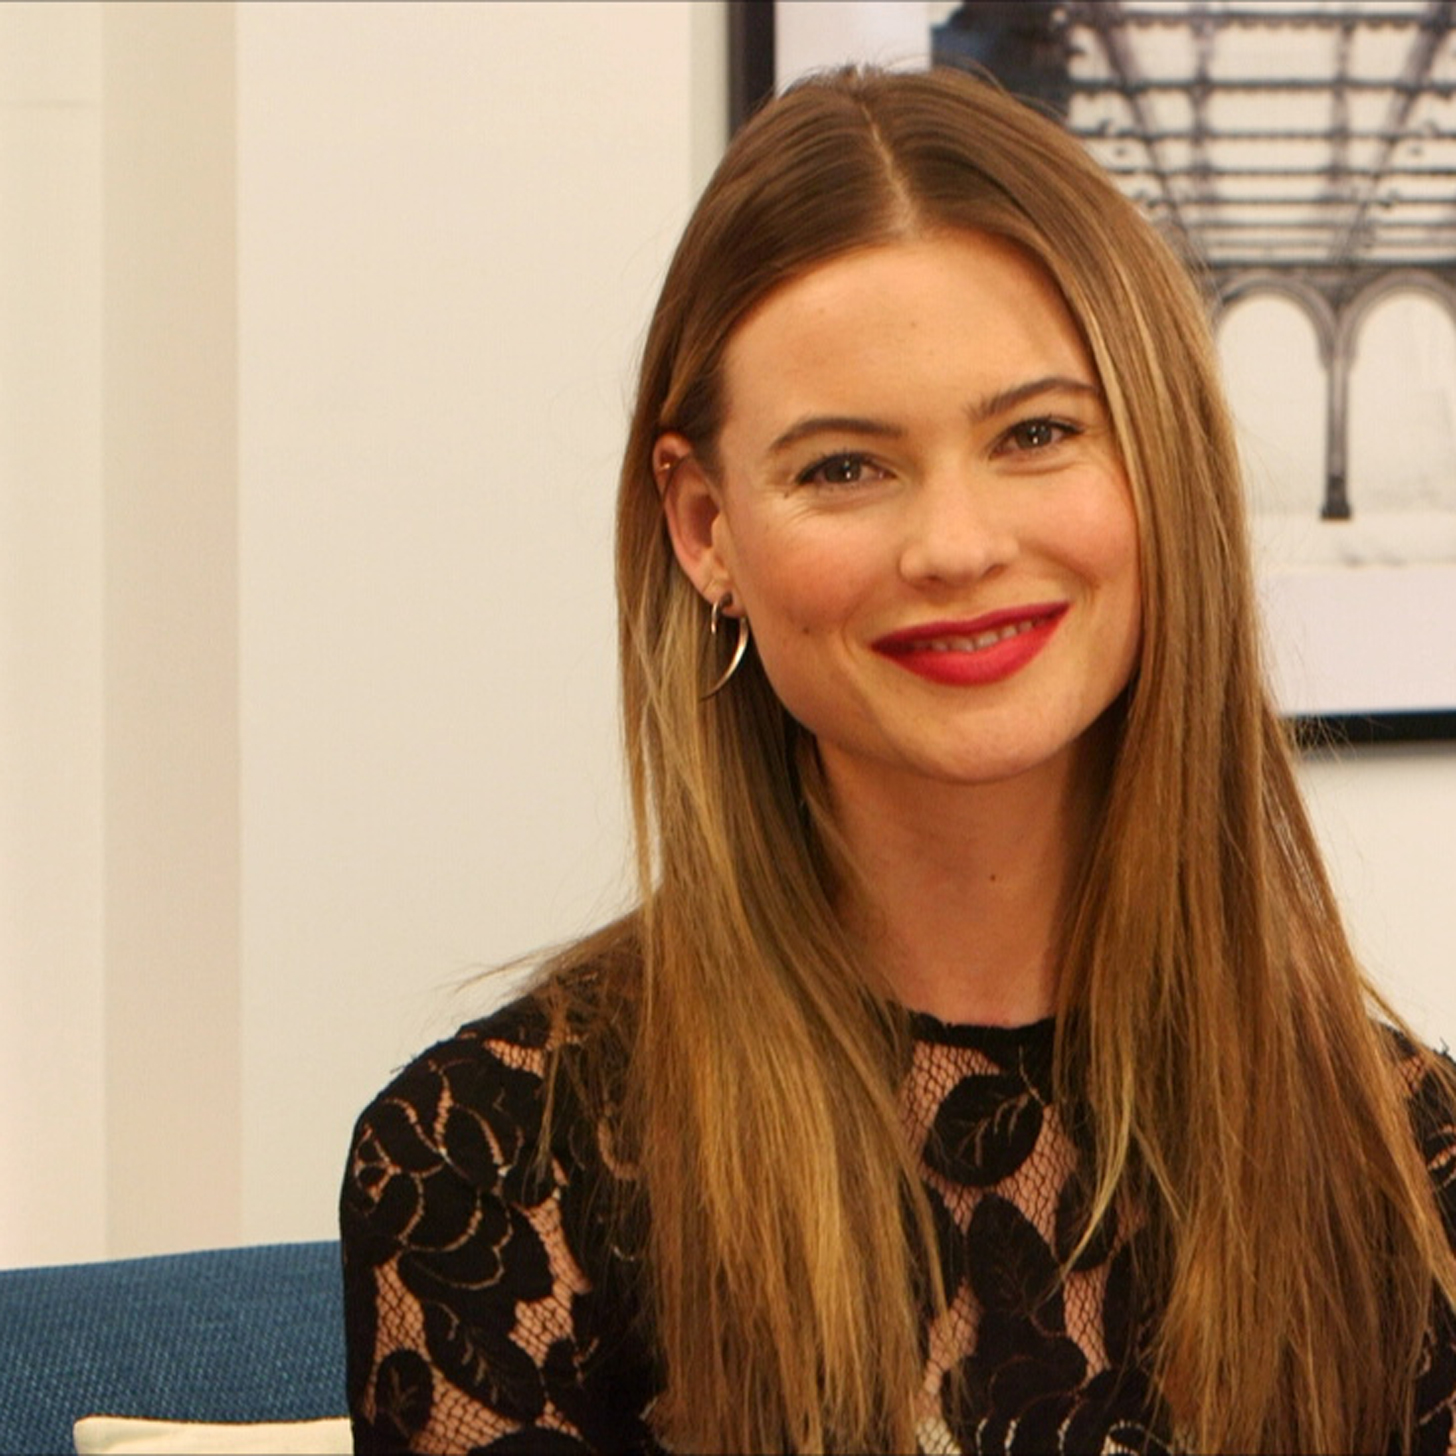 Behati Prinsloo earned a unknown million dollar salary - leaving the net worth at 3 million in 2017